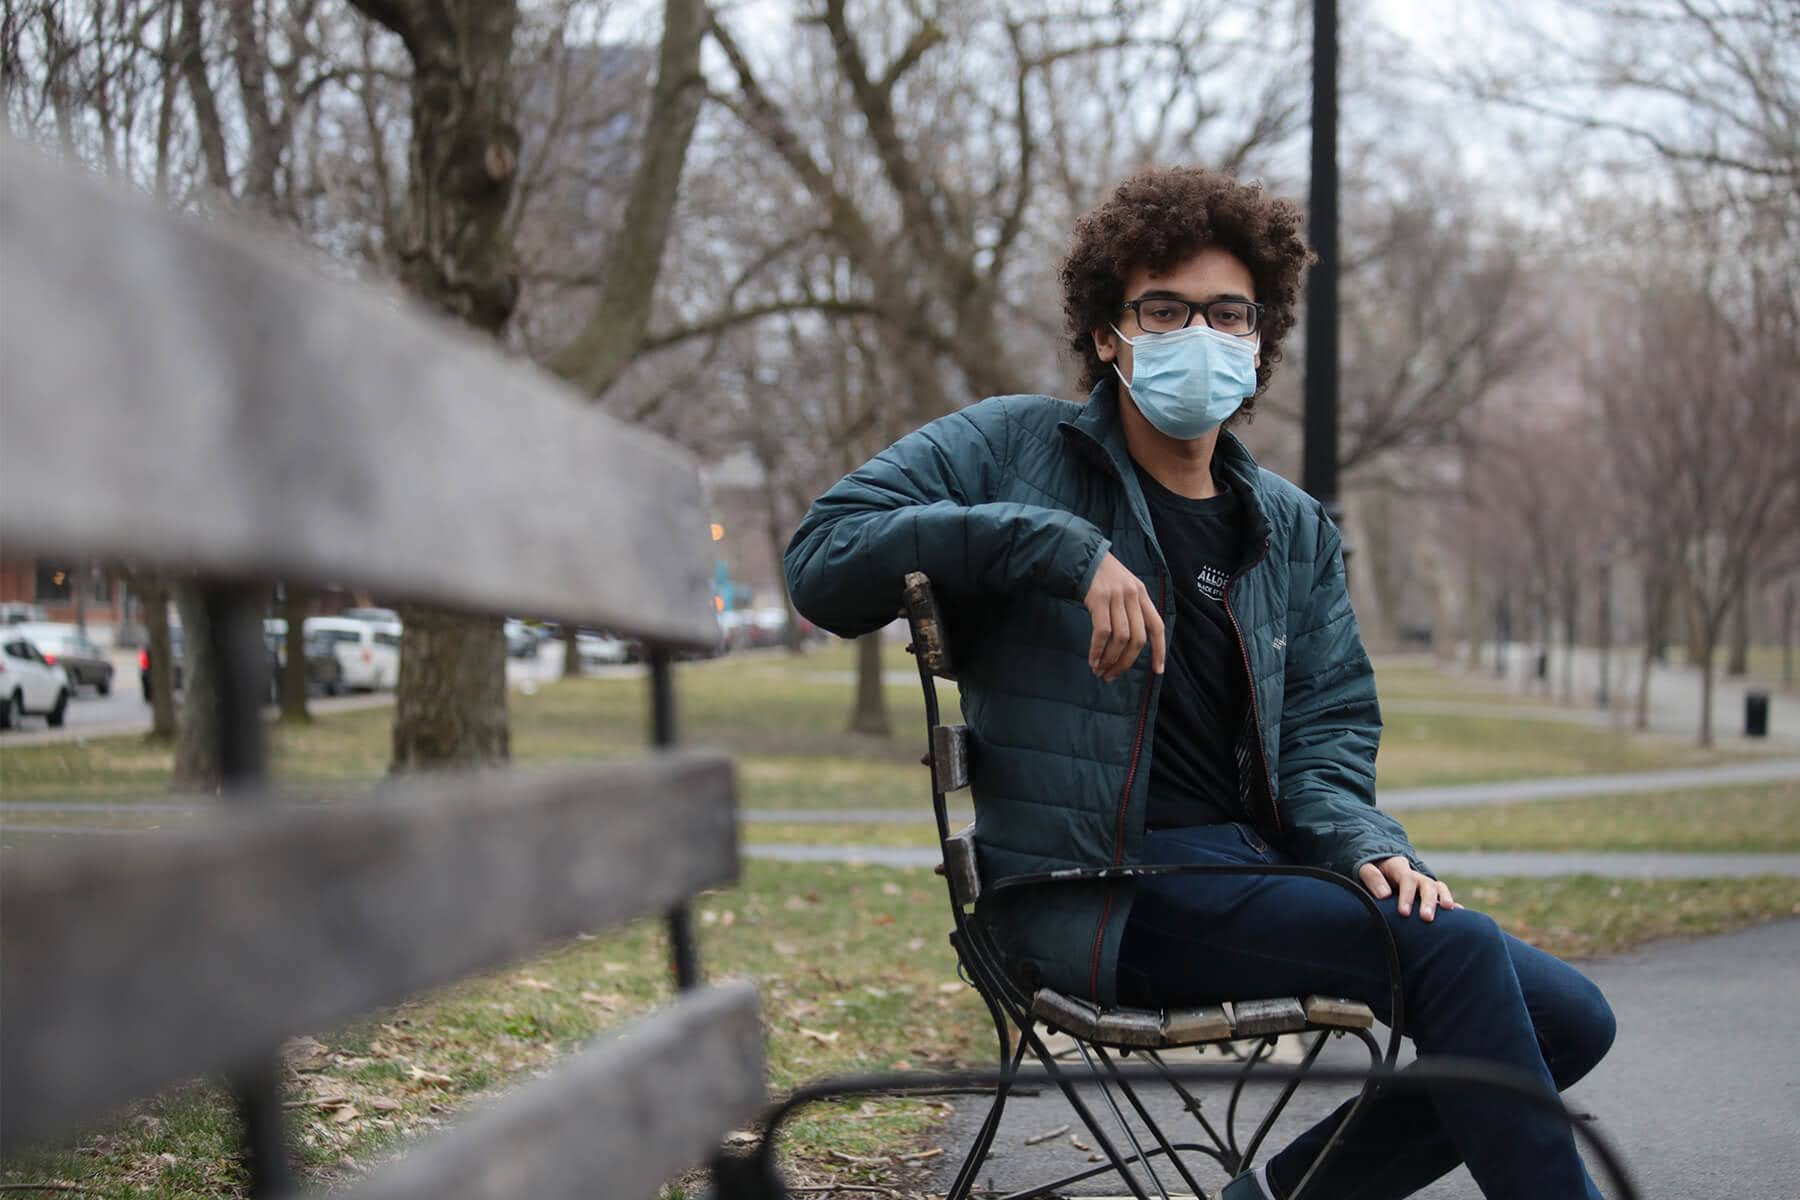 Dakota Castro-Jarrett, 17, is a senior at Taylor Allderdice High School. Here he is photographed at Allegheny Commons park, which is near his home in East Allegheny. (Photo by Ryan Loew/PublicSource)